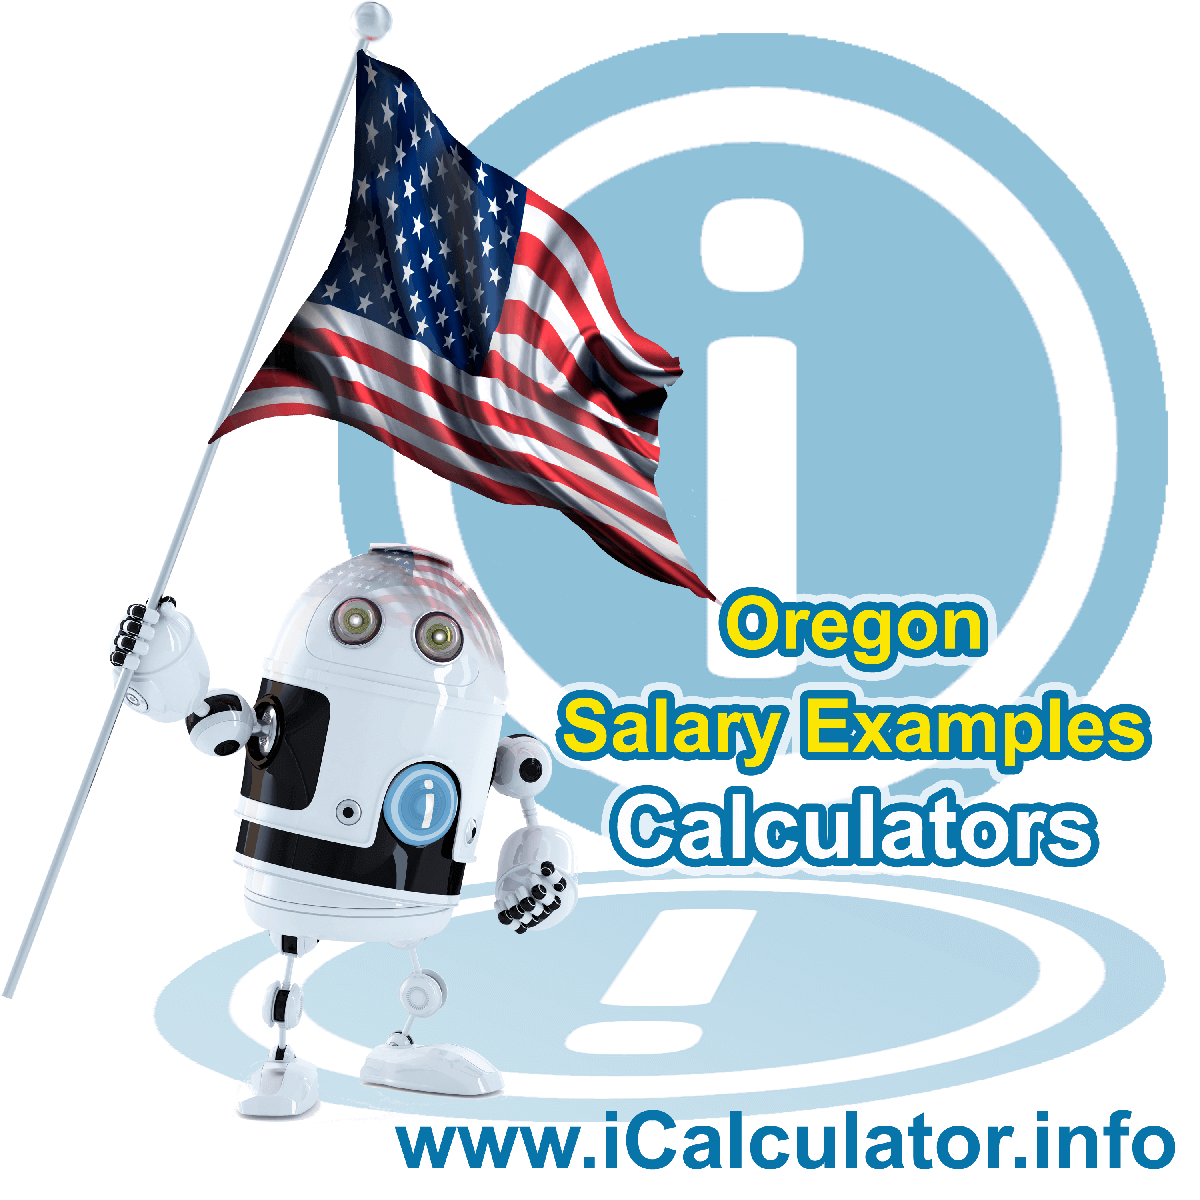 Oregon Salary Example for $190.00 in 2020 | iCalculator | $190.00 salary example for employee and employer paying Oregon State tincome taxes. Detailed salary after tax calculation including Oregon State Tax, Federal State Tax, Medicare Deductions, Social Security, Capital Gains and other income tax and salary deductions complete with supporting Oregon state tax tables